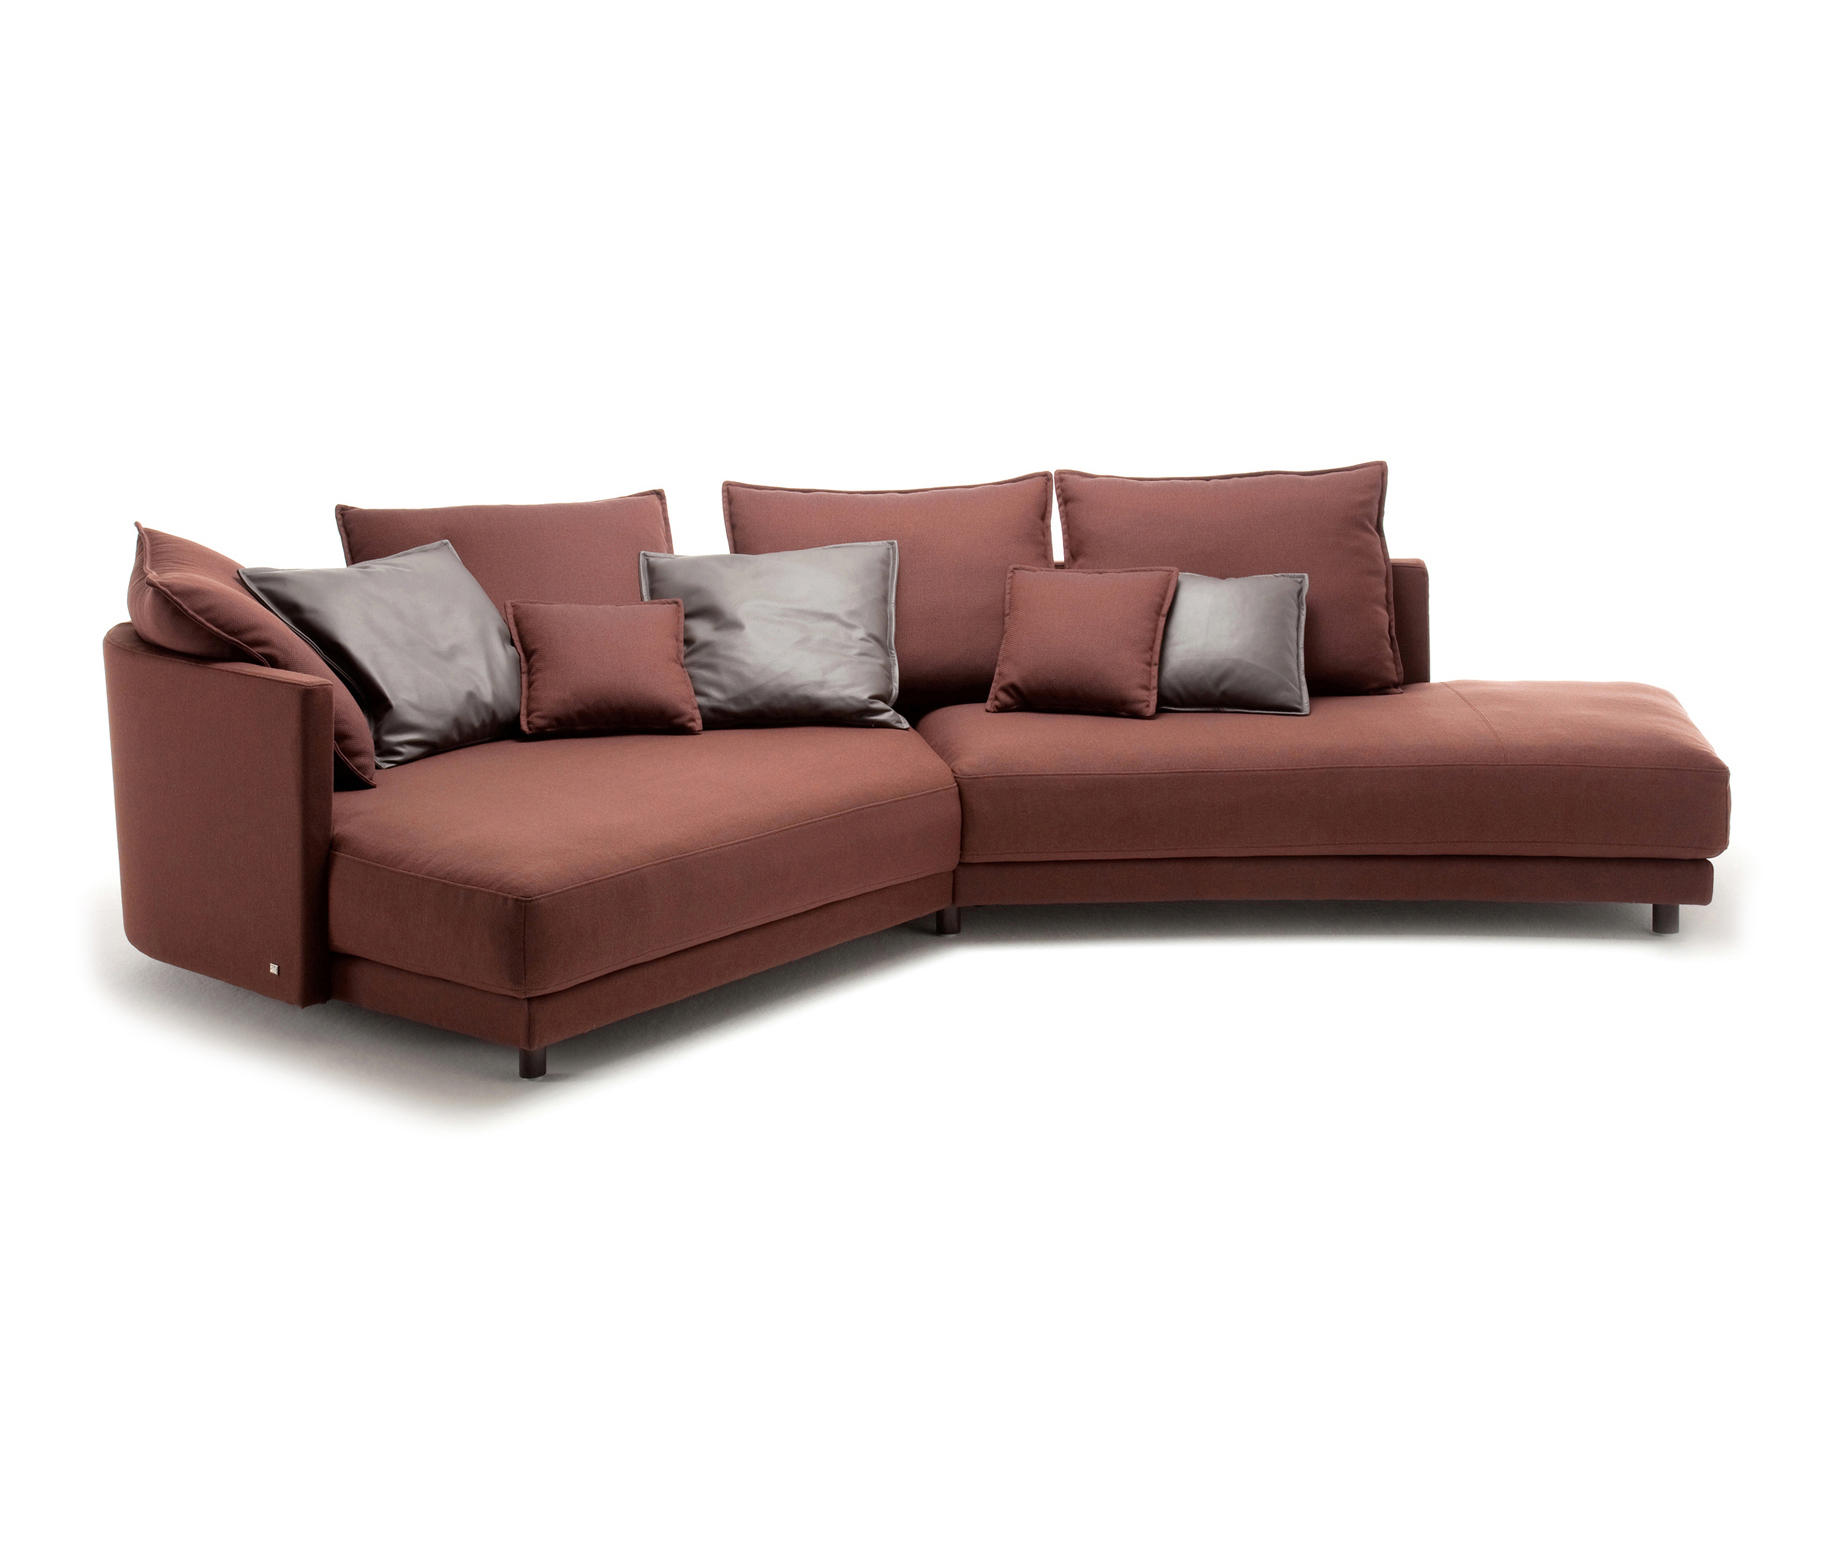 rolf benz onda lounge sofas from rolf benz architonic. Black Bedroom Furniture Sets. Home Design Ideas